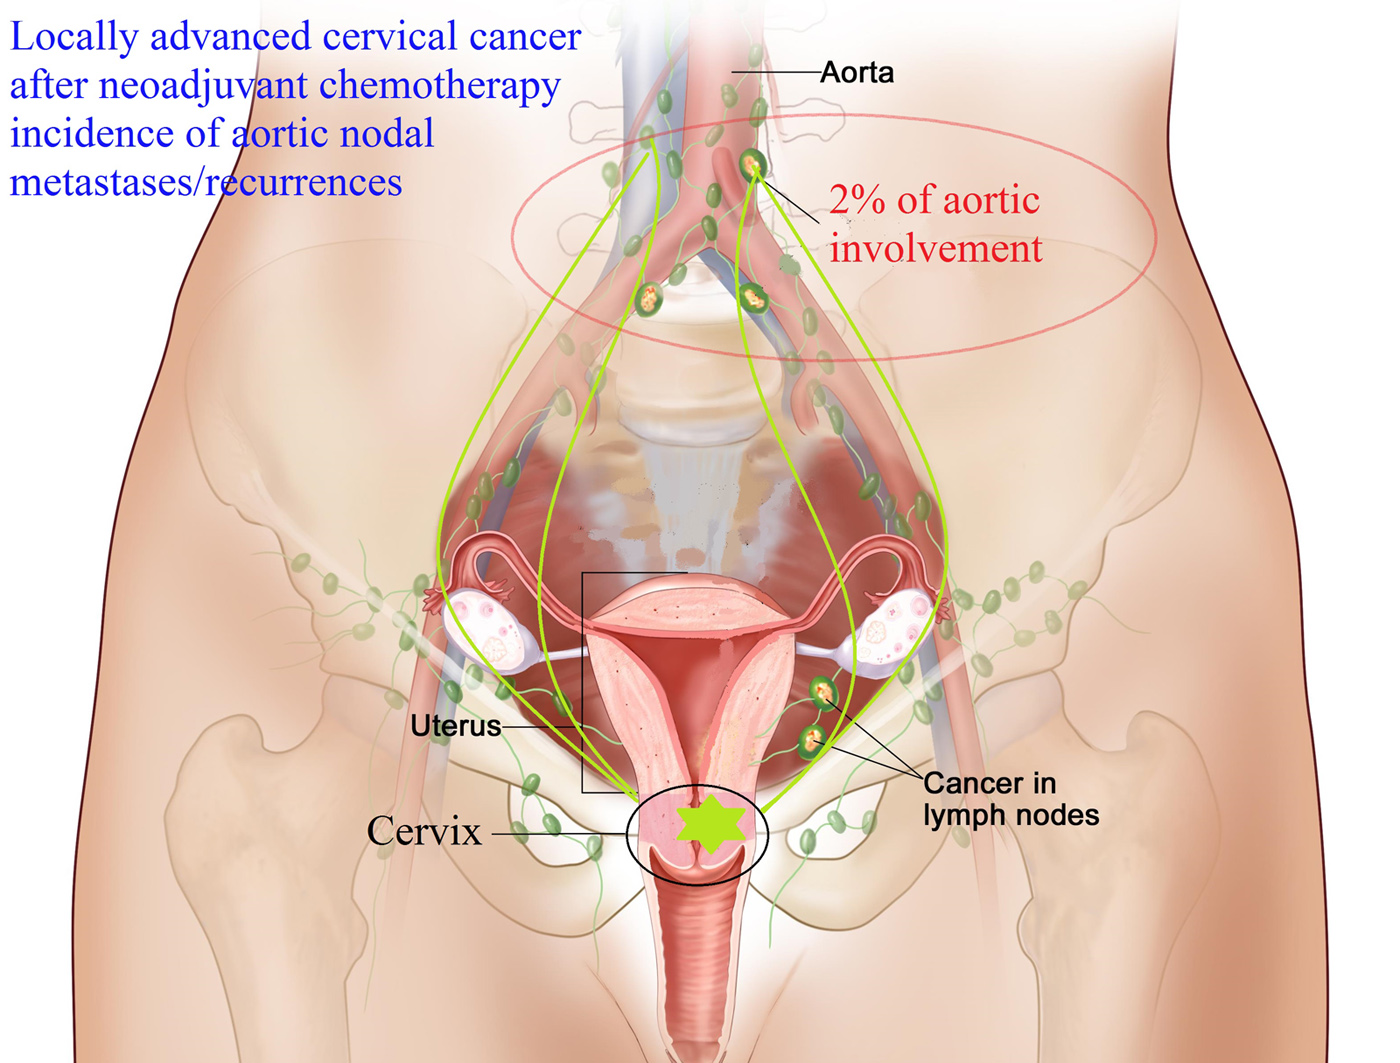 Risk Of Aortic Nodal Metastases In Cancer Of The Uterine Cervix